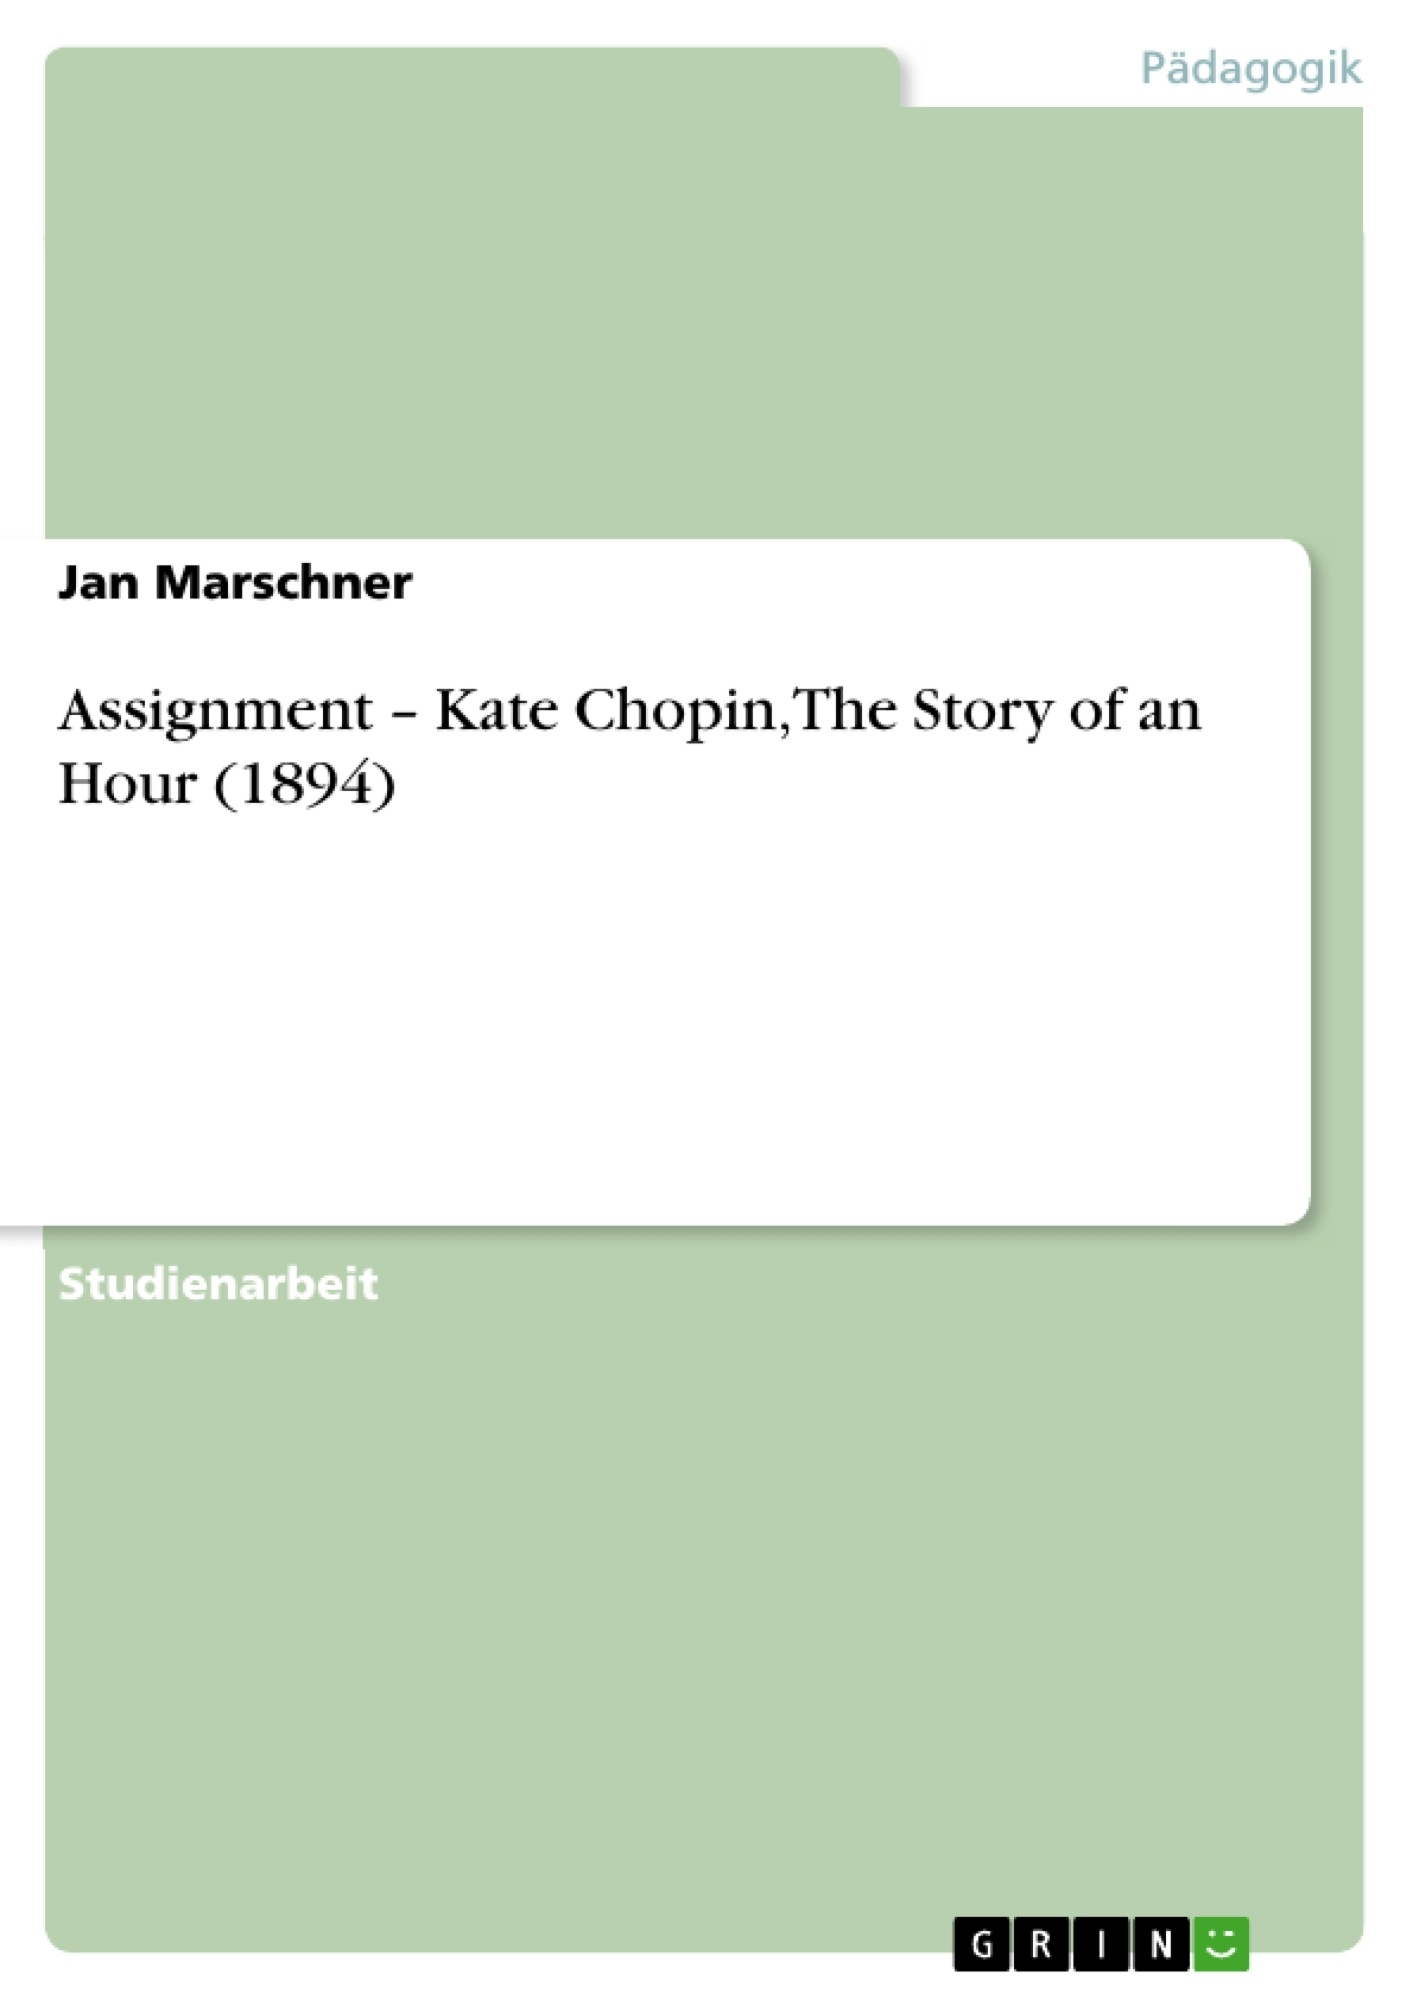 the metaphoric story of kate chopins the storm Author kate chopin has expressed feminine freedom in two of her short stories: the storm and story of an hour she was the breakthrough author for female independence and human sexuality.